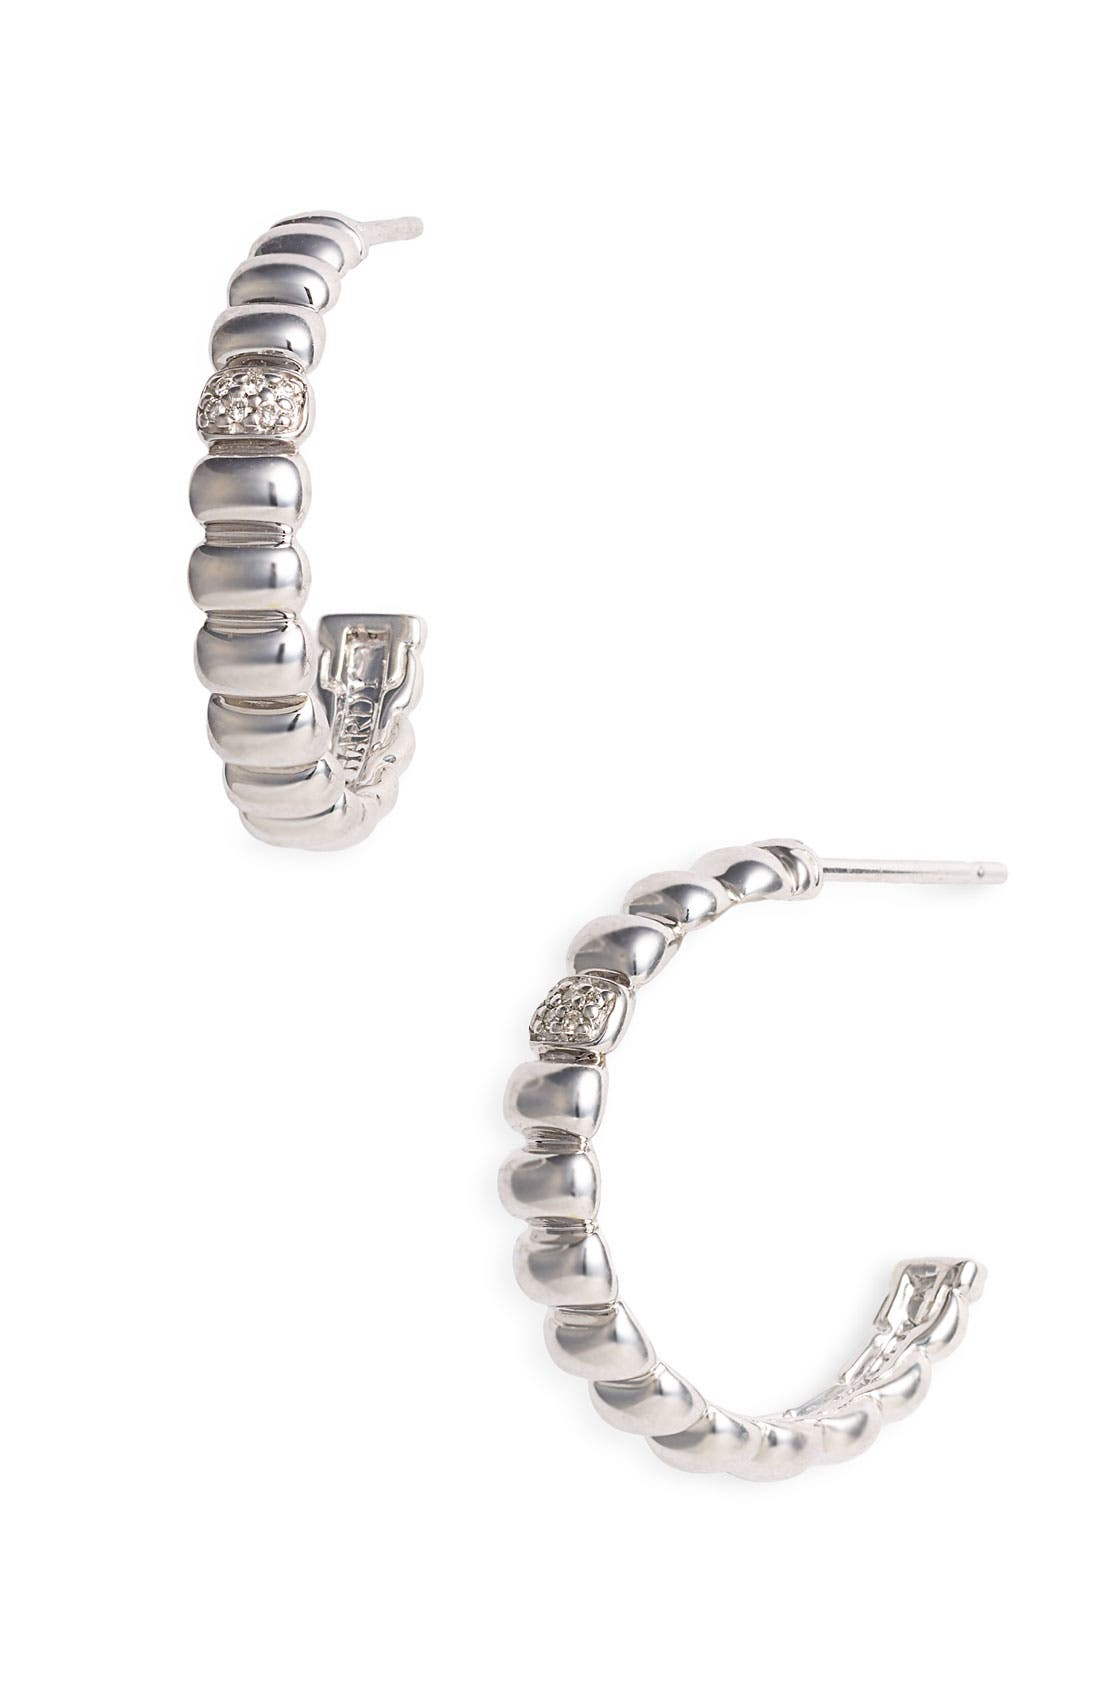 Alternate Image 1 Selected - John Hardy 'Bedeg' Small Diamond Hoop Earrings